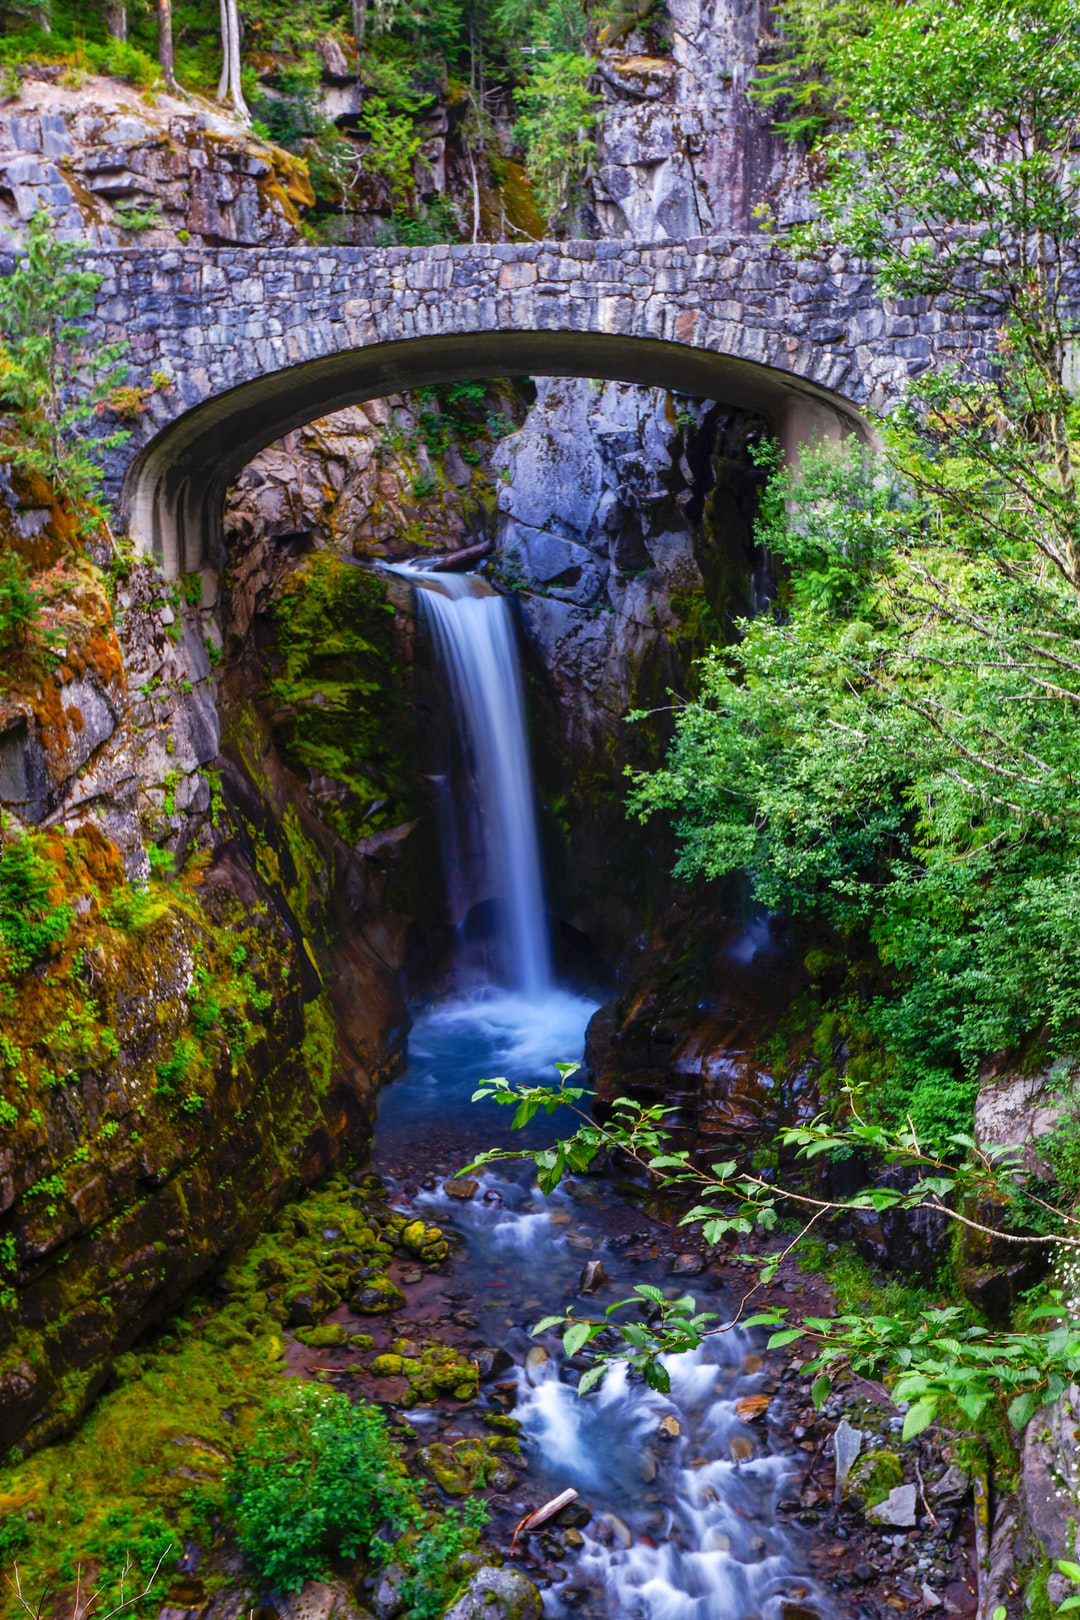 A photo of Christine Falls (in Mt. Rainier). A waterfall under an arch.